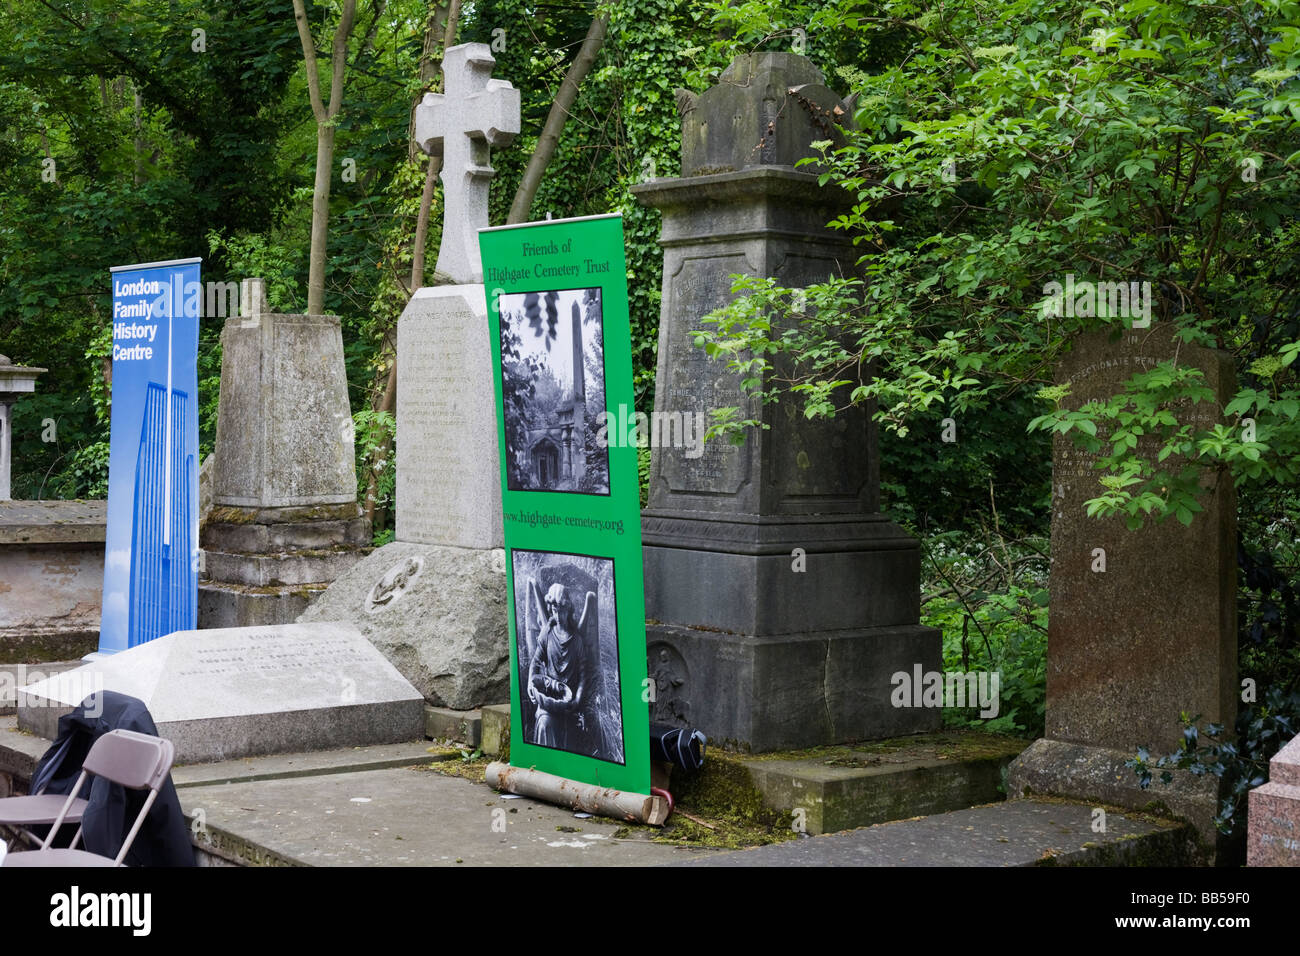 A genealogy society has a stall next to tombs and memorials during Nunhead Cemetery's open day - Stock Image